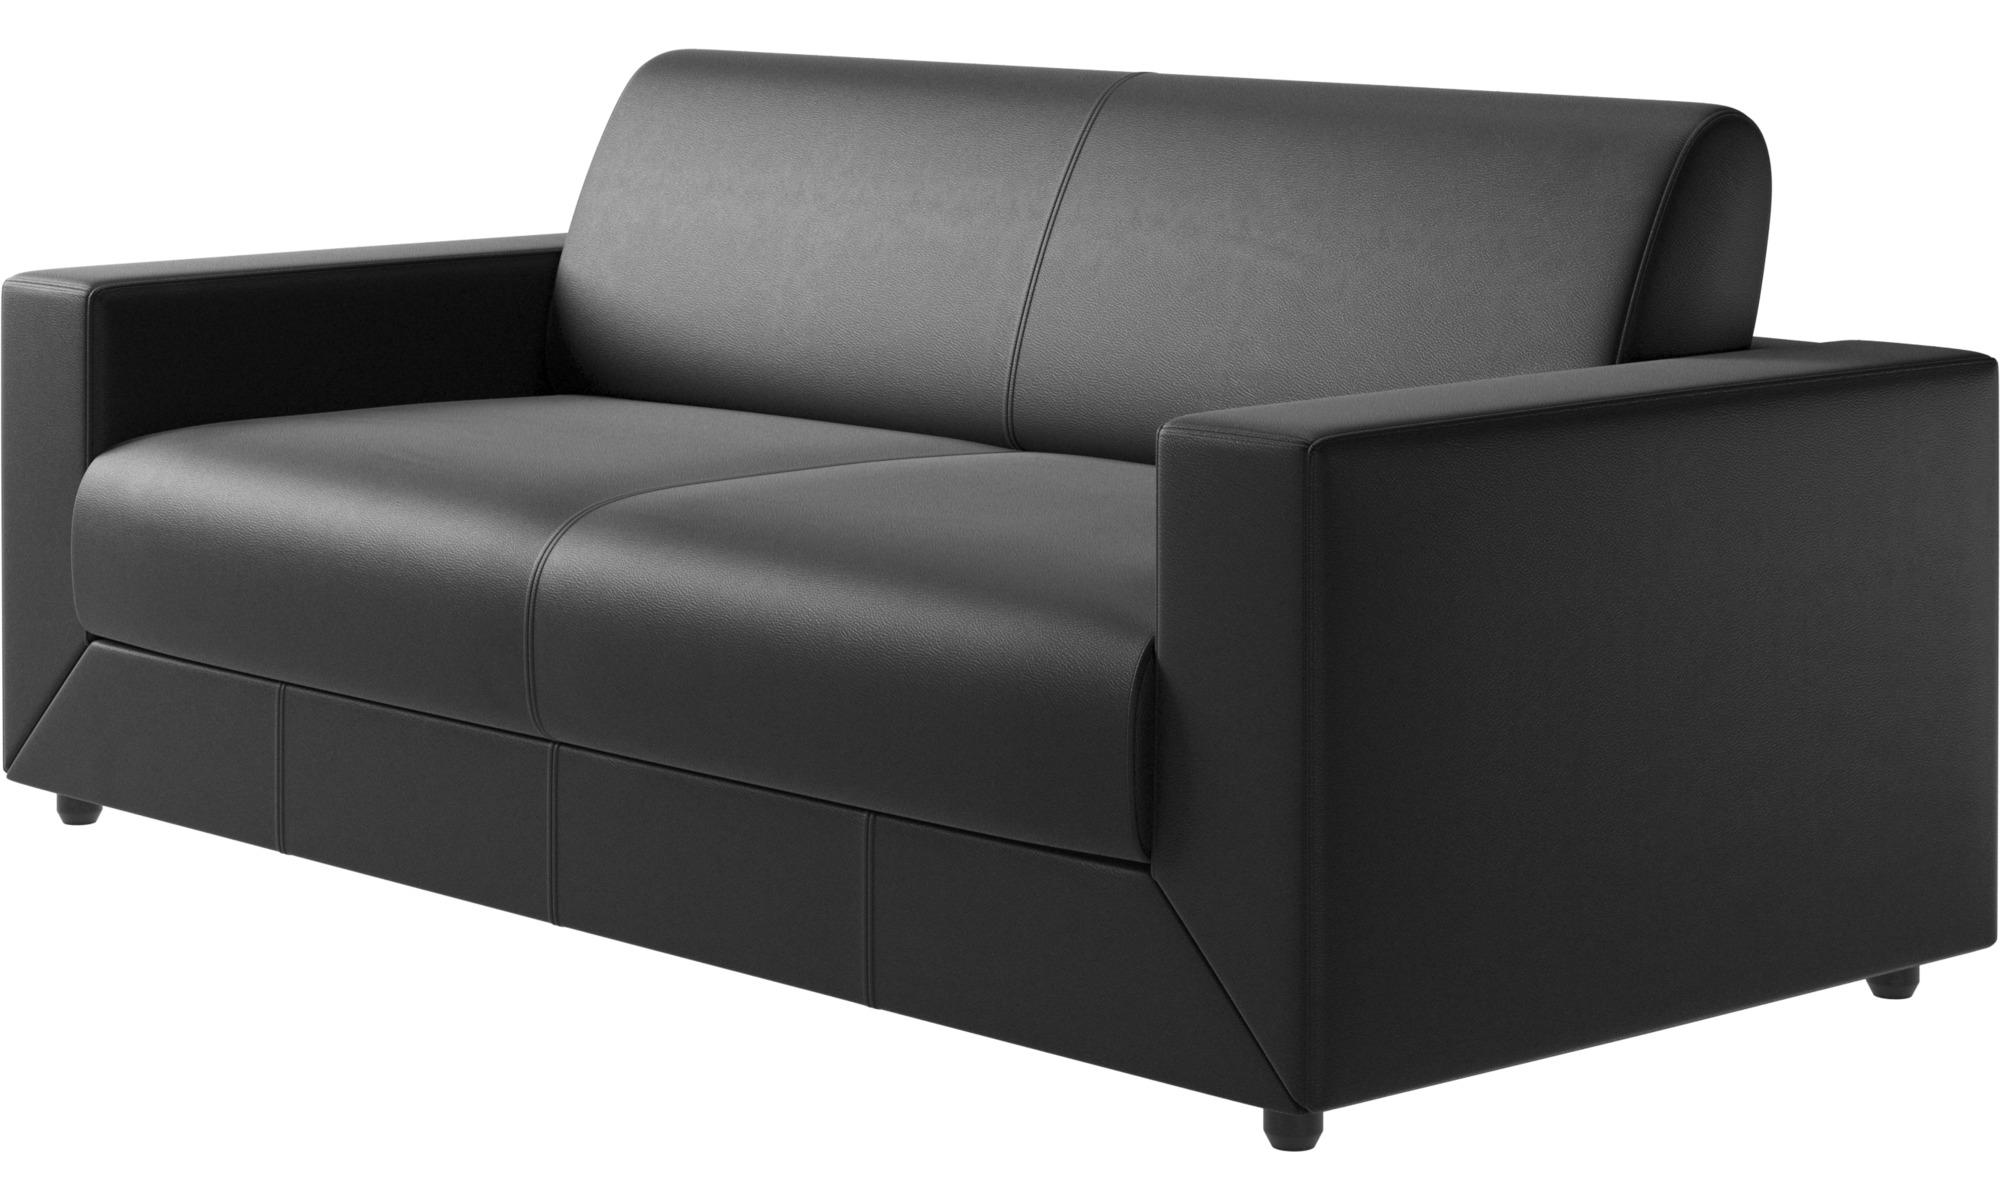 Boconcept Stockholm Sofa Bed Review